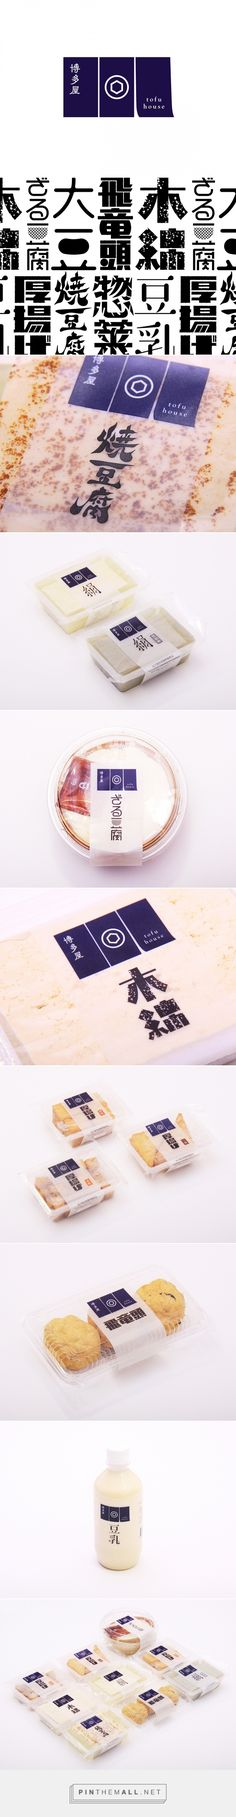 Tofu House packaging design by BLOW HK - http://www.packagingoftheworld.com/2016/10/tofu-house.html